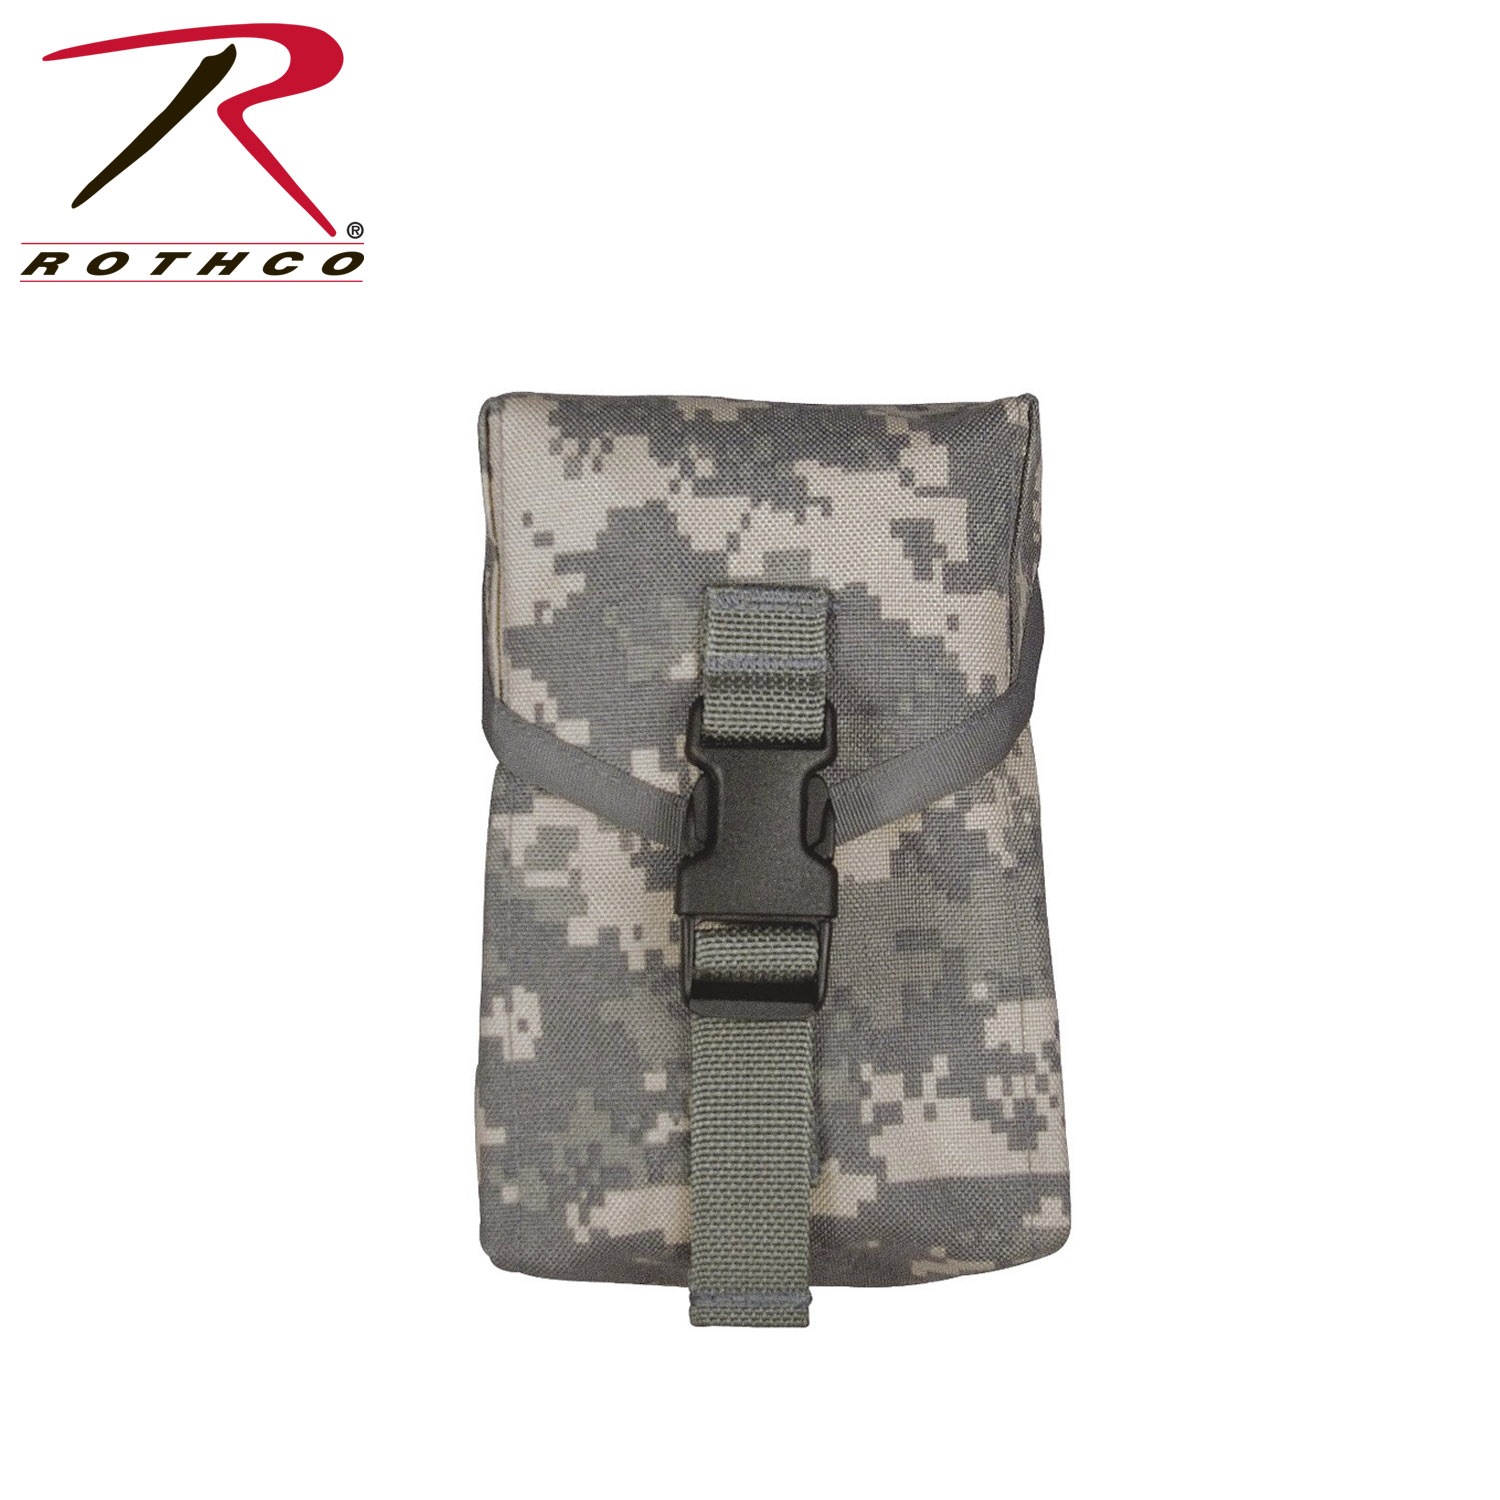 beta Rothco MOLLE II 100 Round Saw Pouch c303a1965e